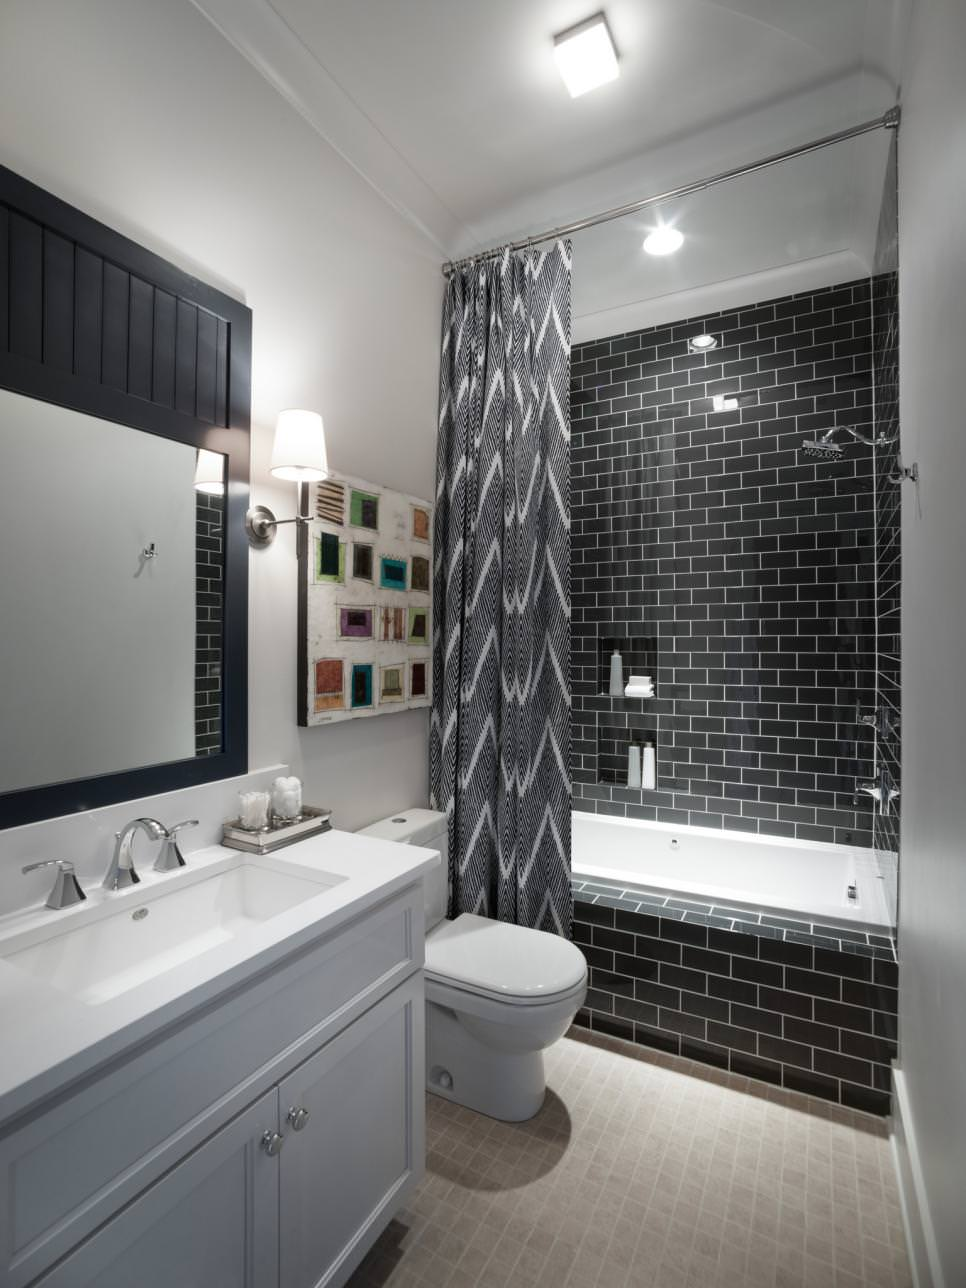 Captivating Black And White Modern Narrow Bathroom Design